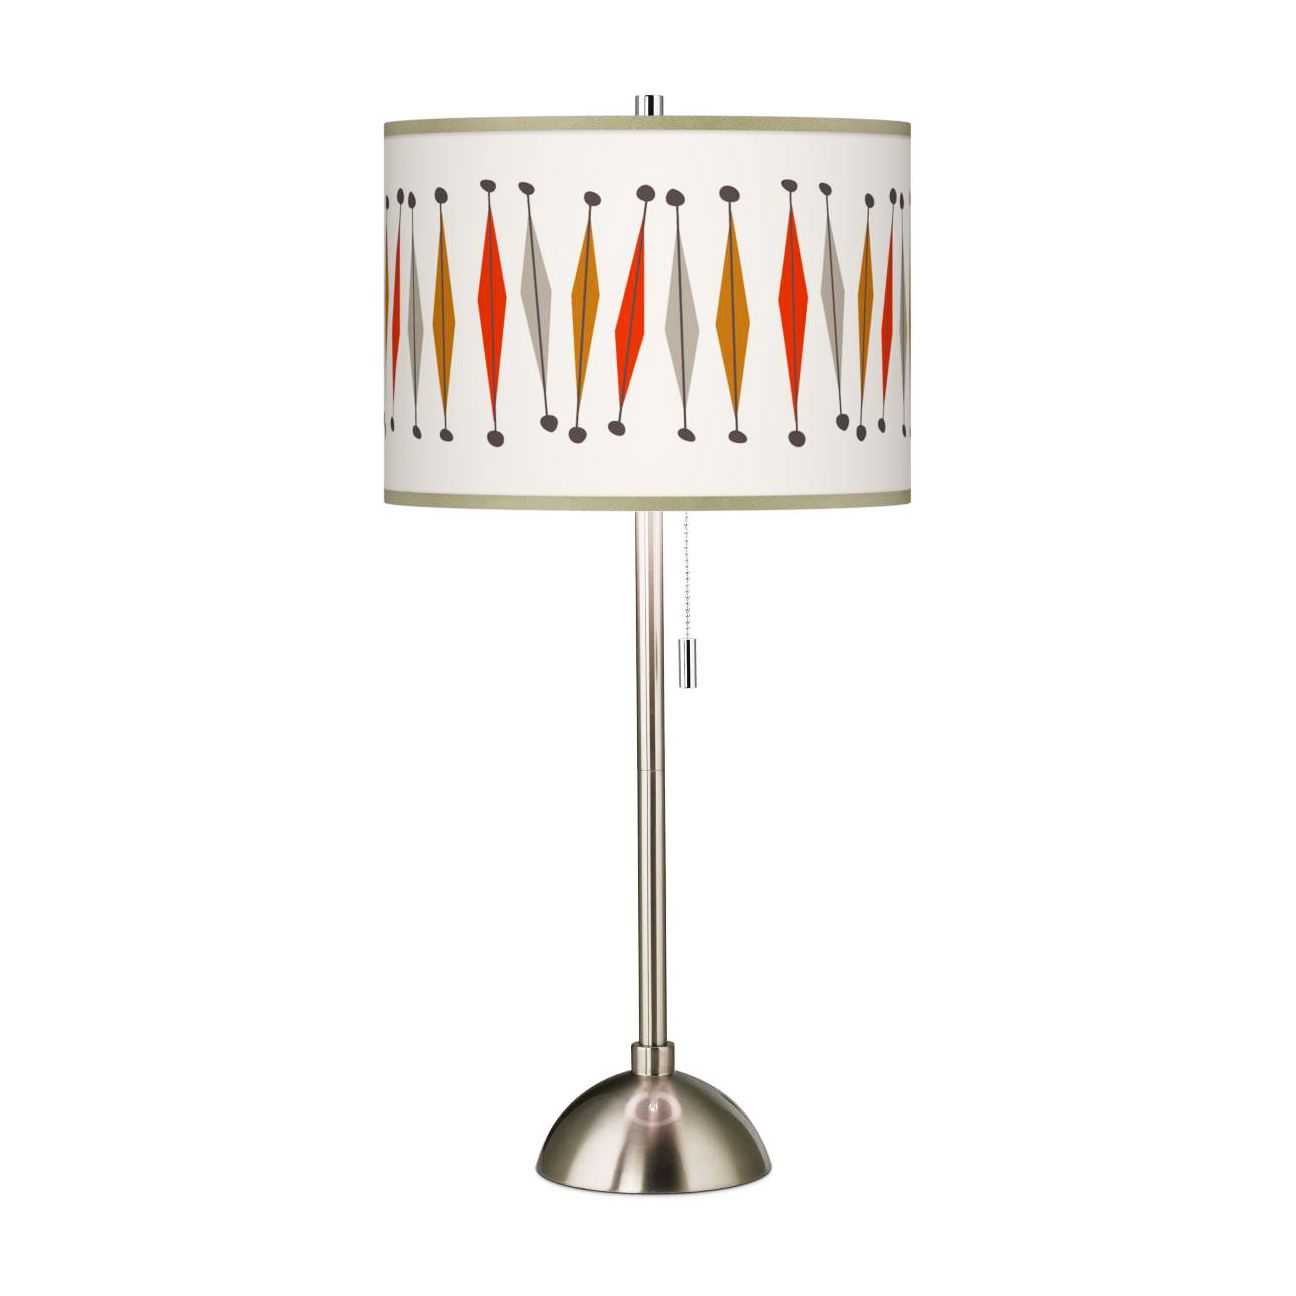 Retro table lamp dotandbo mcm pinterest retro table retro table lamp dotandbo aloadofball